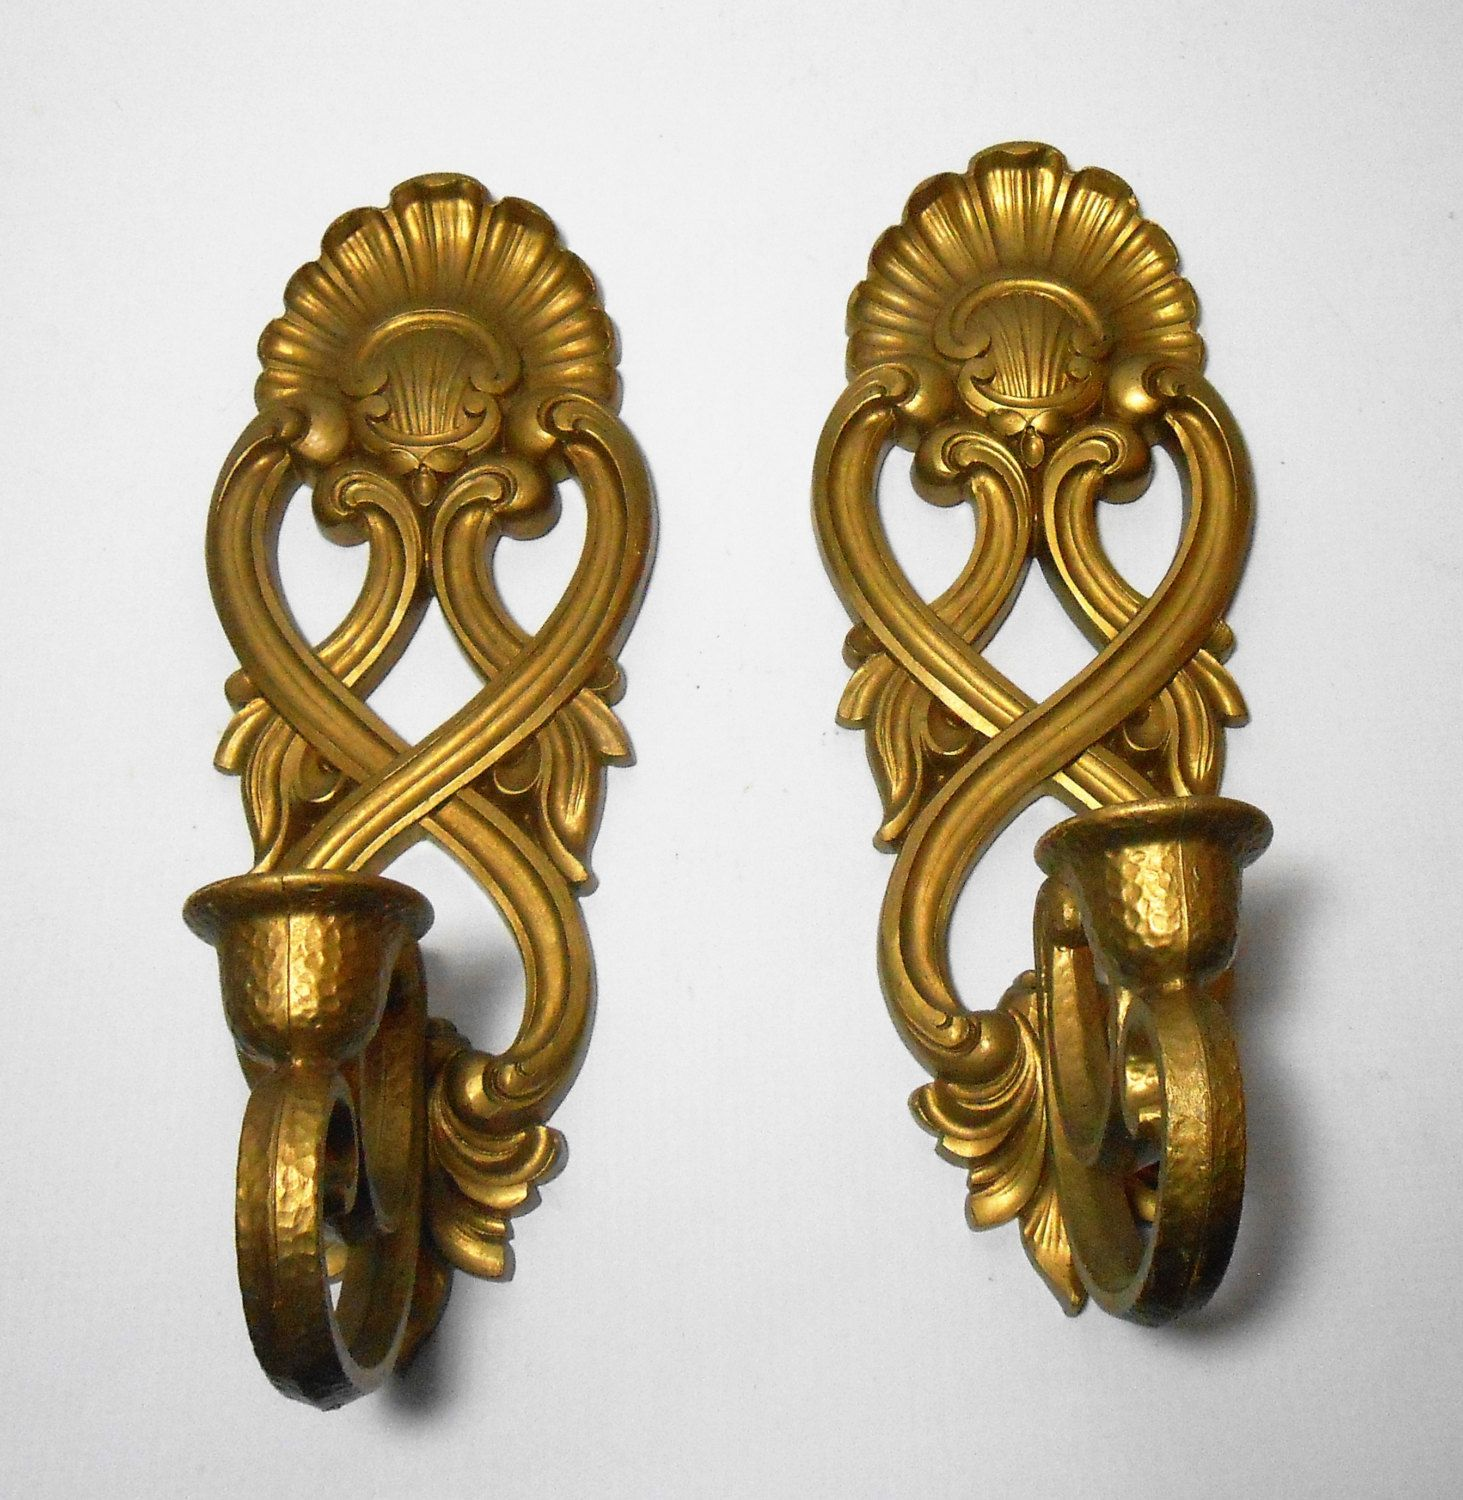 Vintage Candle Holders, Sconces, Gold, Ornate, Wall Sconce ... on Decorative Wall Sconces Candle Holders Chrome id=94775